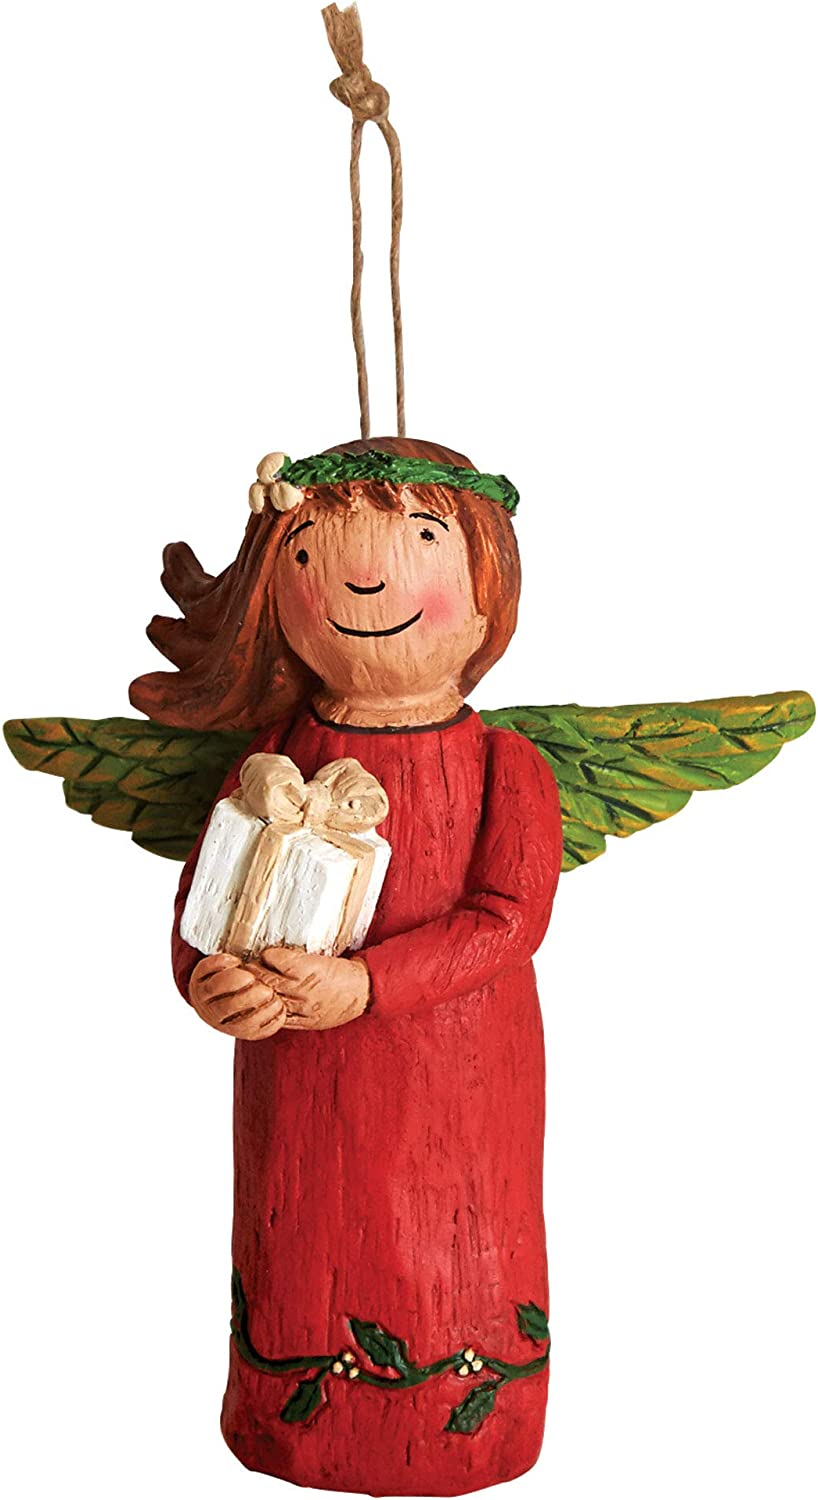 Studio M Wings of Whimsy Life's Gifts Hand-Painted Inspirational Angel Ornament, Decorative Home Décor Sculpture, Beautiful Wood-Carved Look, 3.25 x 4.5 Inches